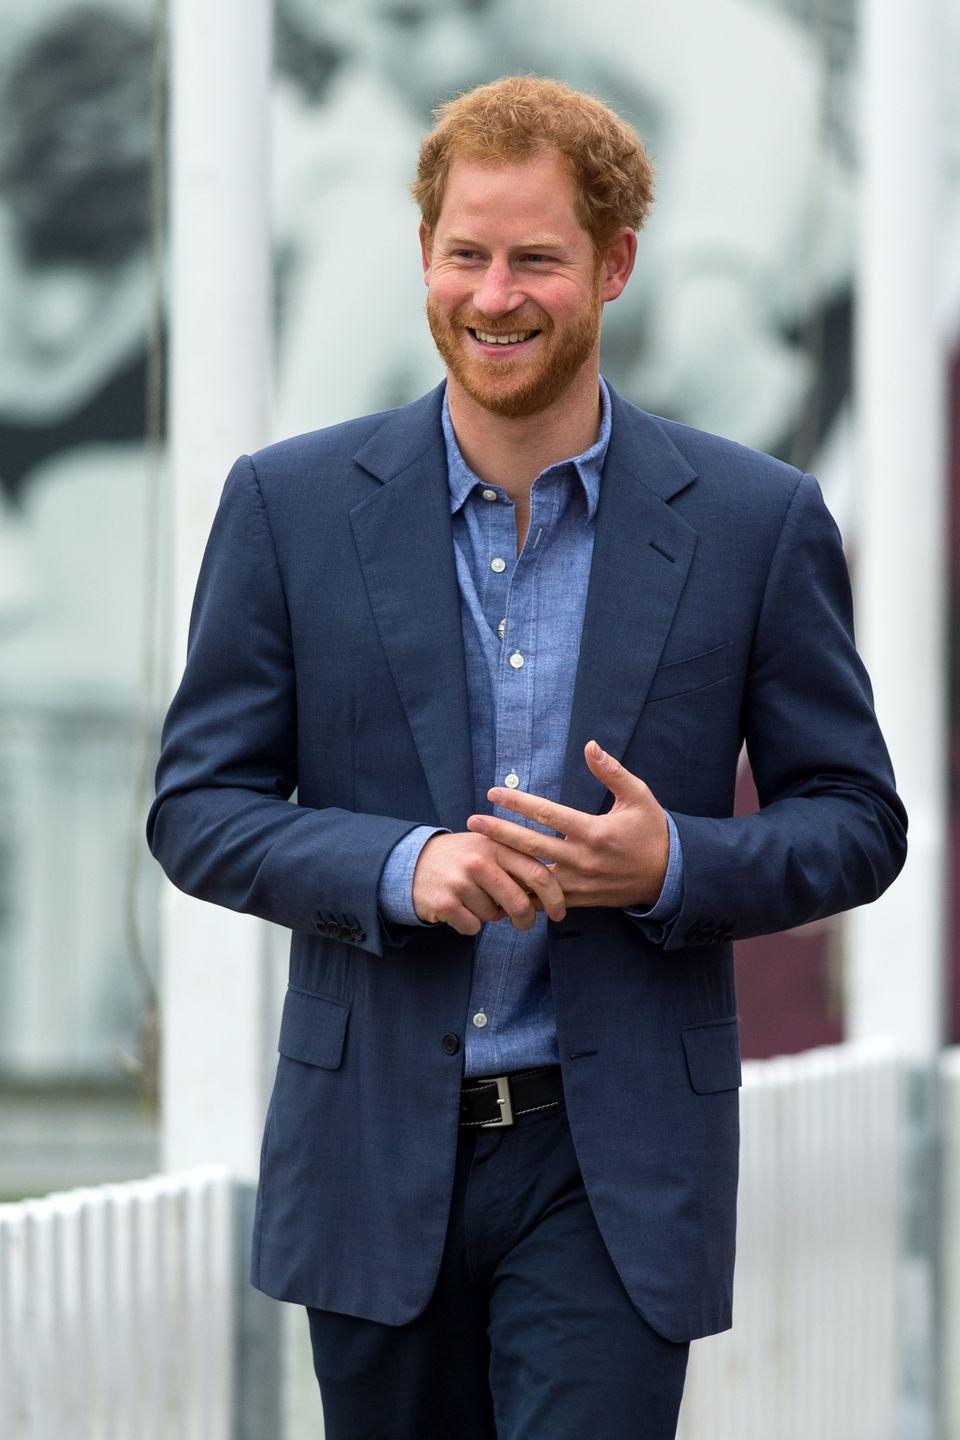 """<p>Unlike William, Prince Harry wasn't exactly <em>born</em> to be king—but he seems perfectly cool with that. To the point where he and his wife, <a href=""""https://www.cosmopolitan.com/entertainment/a20716888/meghan-markle-net-worth/"""" rel=""""nofollow noopener"""" target=""""_blank"""" data-ylk=""""slk:Meghan Markle"""" class=""""link rapid-noclick-resp"""">Meghan Markle</a>, <a href=""""https://www.cosmopolitan.com/entertainment/celebs/a30496404/meghan-markle-prince-harry-quitting-royal-family-timeline/?utm_campaign=cosmo-2020-tradetracker&utm_medium=affiliate&utm_source=tradetracker&utm_term=137180"""" rel=""""nofollow noopener"""" target=""""_blank"""" data-ylk=""""slk:decided to step back from senior royal duties and move to America"""" class=""""link rapid-noclick-resp"""">decided to step back from senior royal duties and move to America</a>. But FYI, despite stepping back, <a href=""""https://www.etonline.com/inside-meghan-markle-and-prince-harrys-new-life-apart-from-the-royal-family-141859"""" rel=""""nofollow noopener"""" target=""""_blank"""" data-ylk=""""slk:Harry still remains sixth in line to the throne"""" class=""""link rapid-noclick-resp"""">Harry still remains sixth in line to the throne</a>. </p>"""